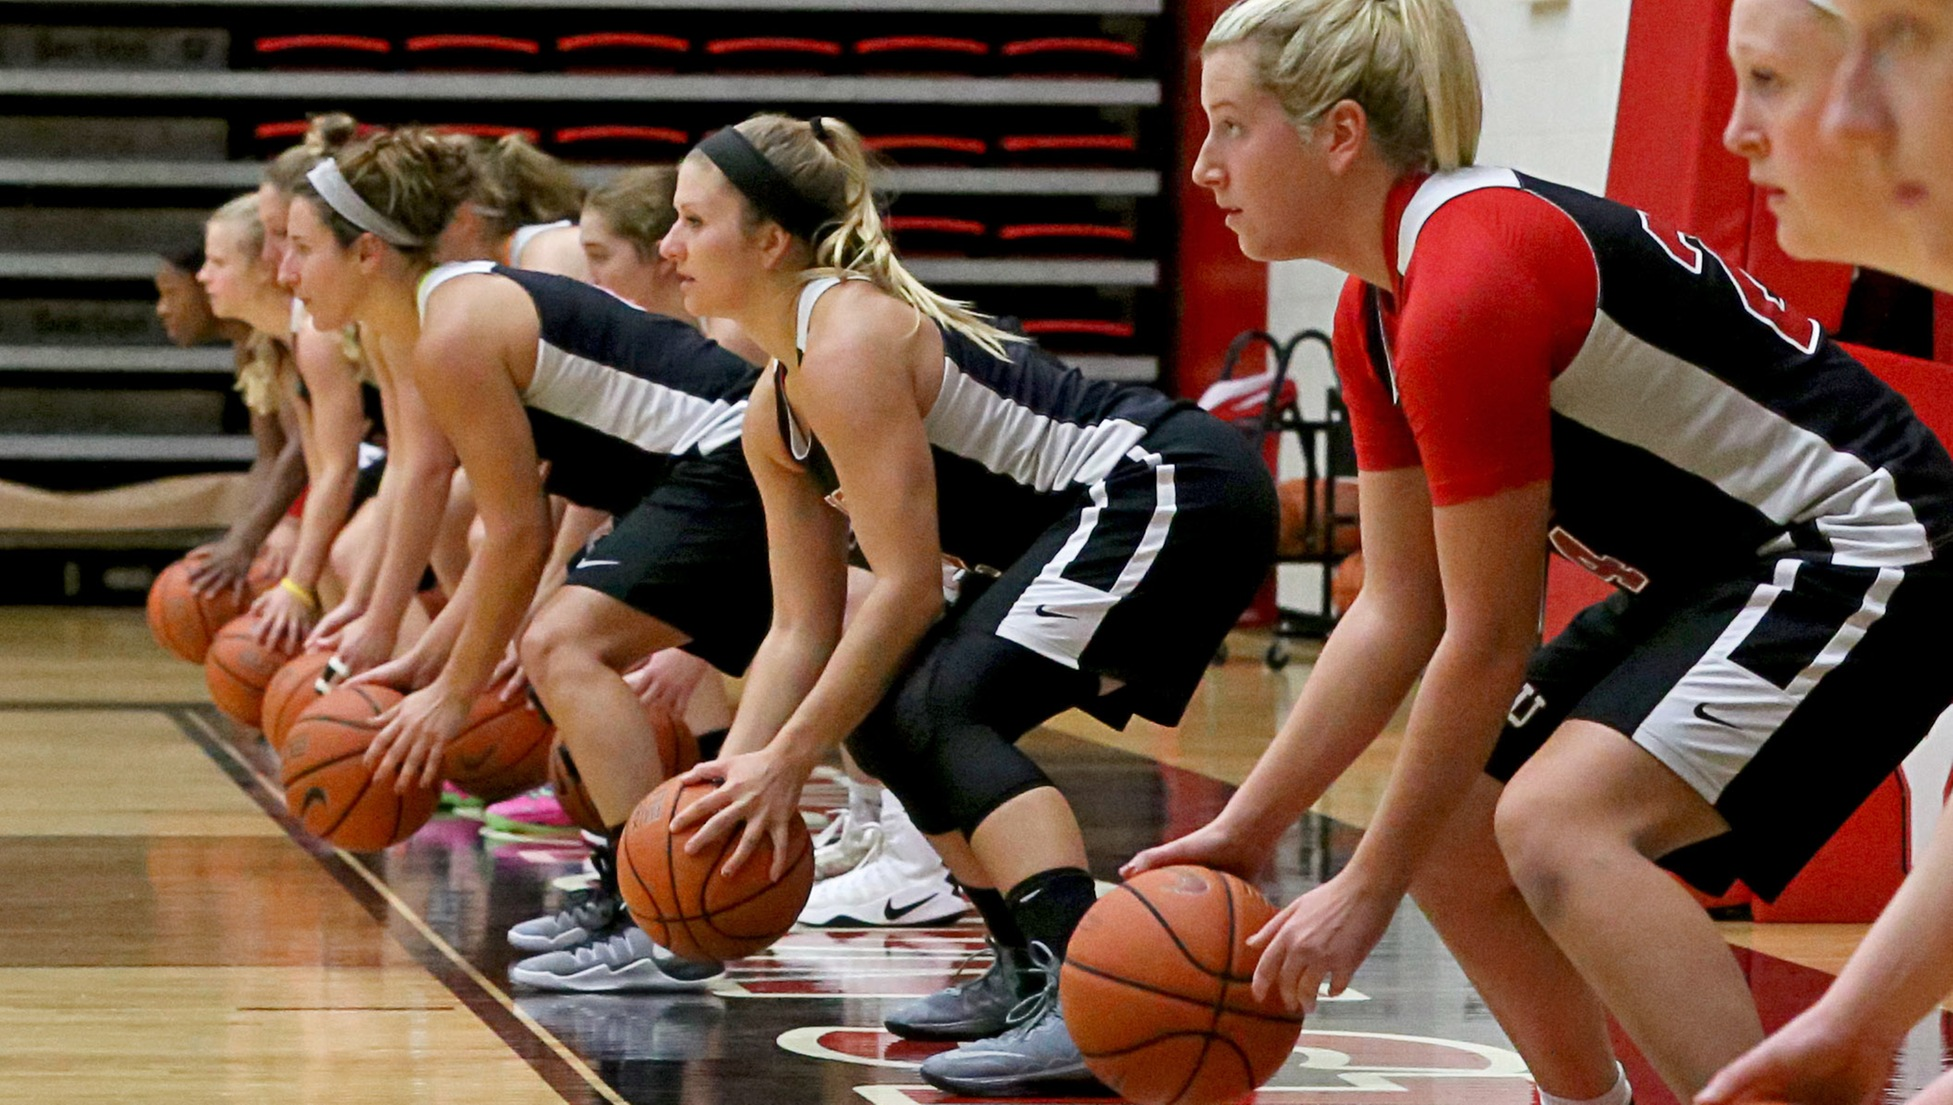 The YSU women's basketball team held its first practice of the 2017-18 season on Oct. 2 at Beeghly Center.